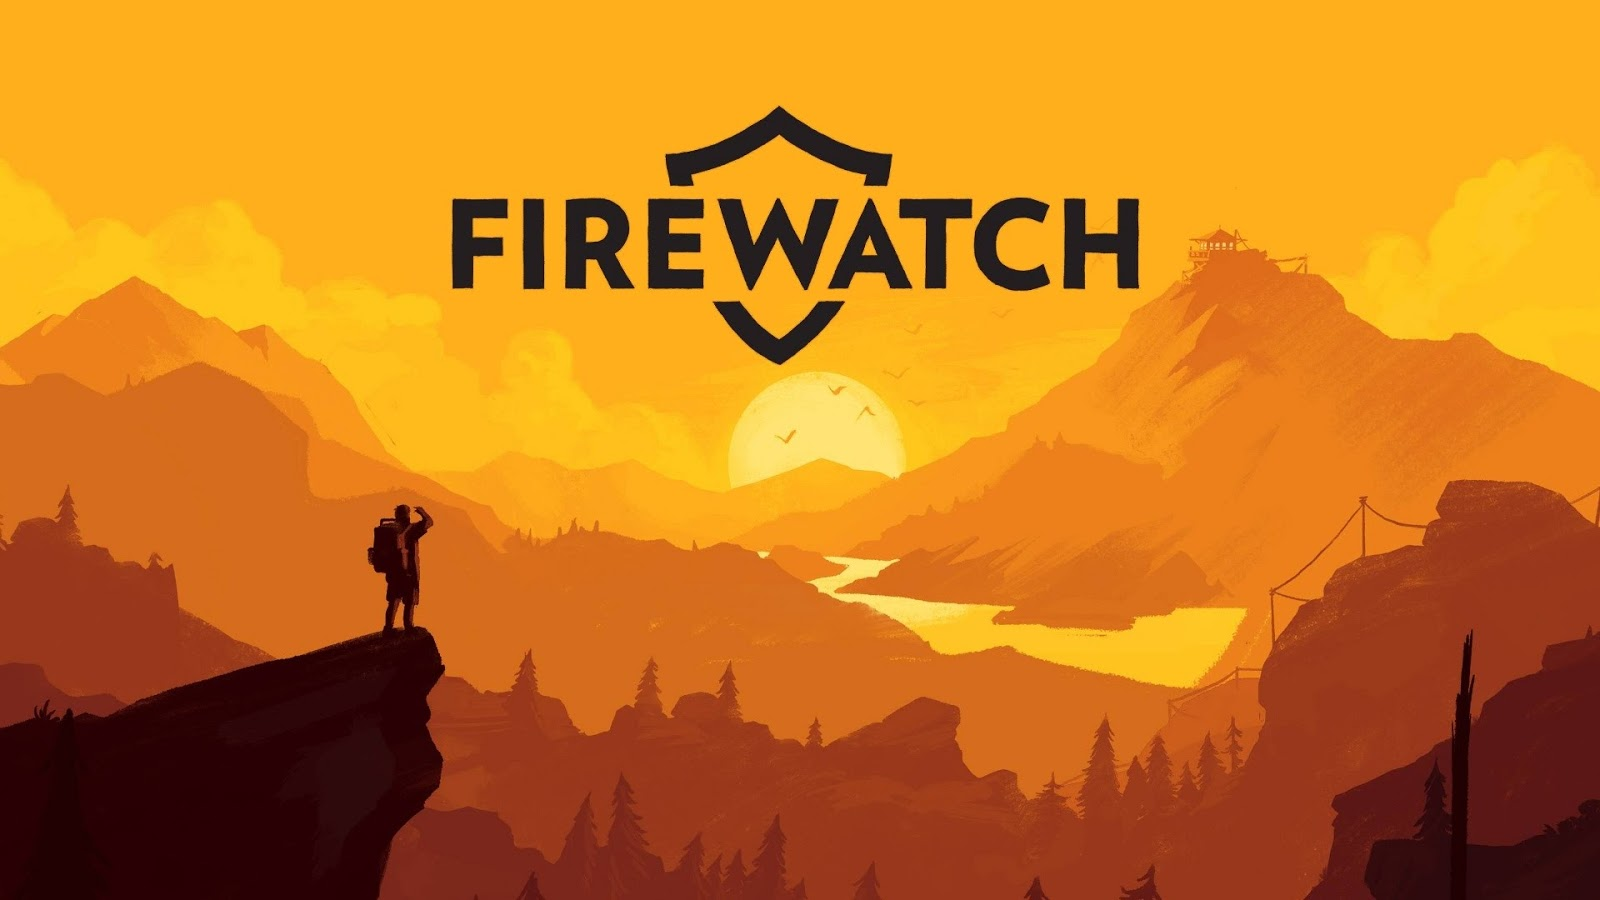 Firewatch Concept Art For Reference